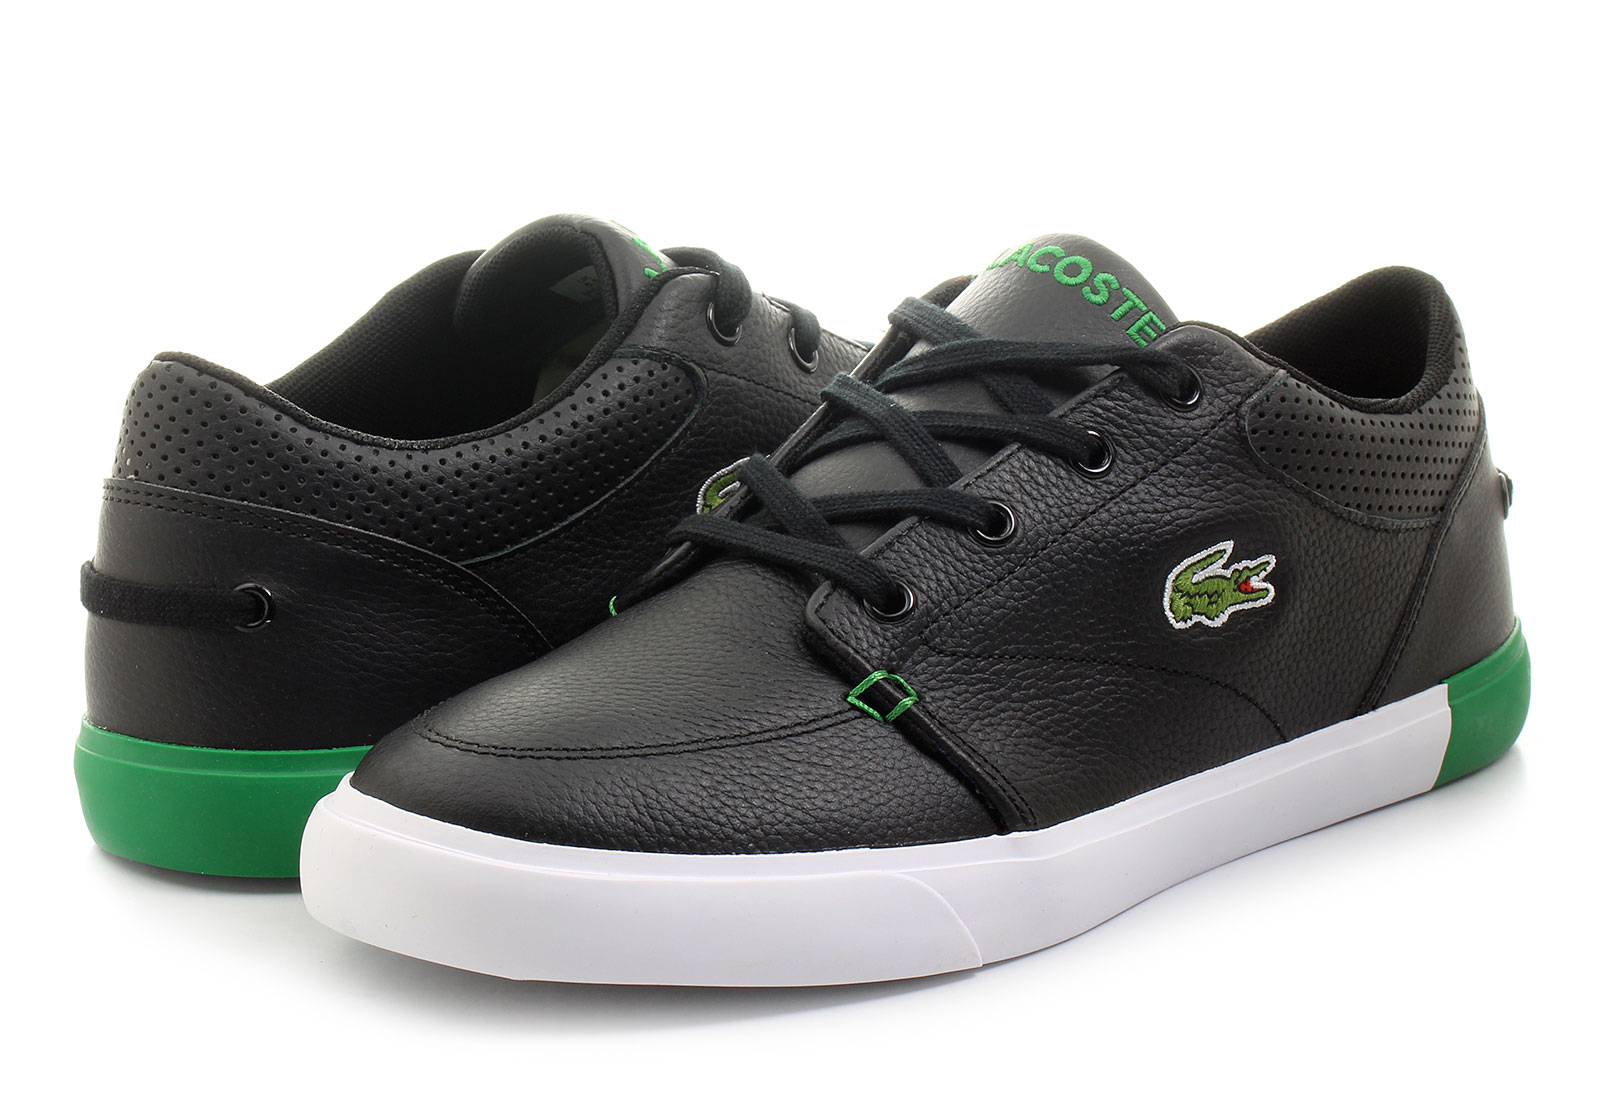 Lacoste Men s Shoes Lacoste men's shoes offer a wide range of versatile footwear—and with designs that inject a sense of modern style into boots, loafers, boat shoes and sneakers, you'll never have to settle for something less than dynamic and eye-catching.